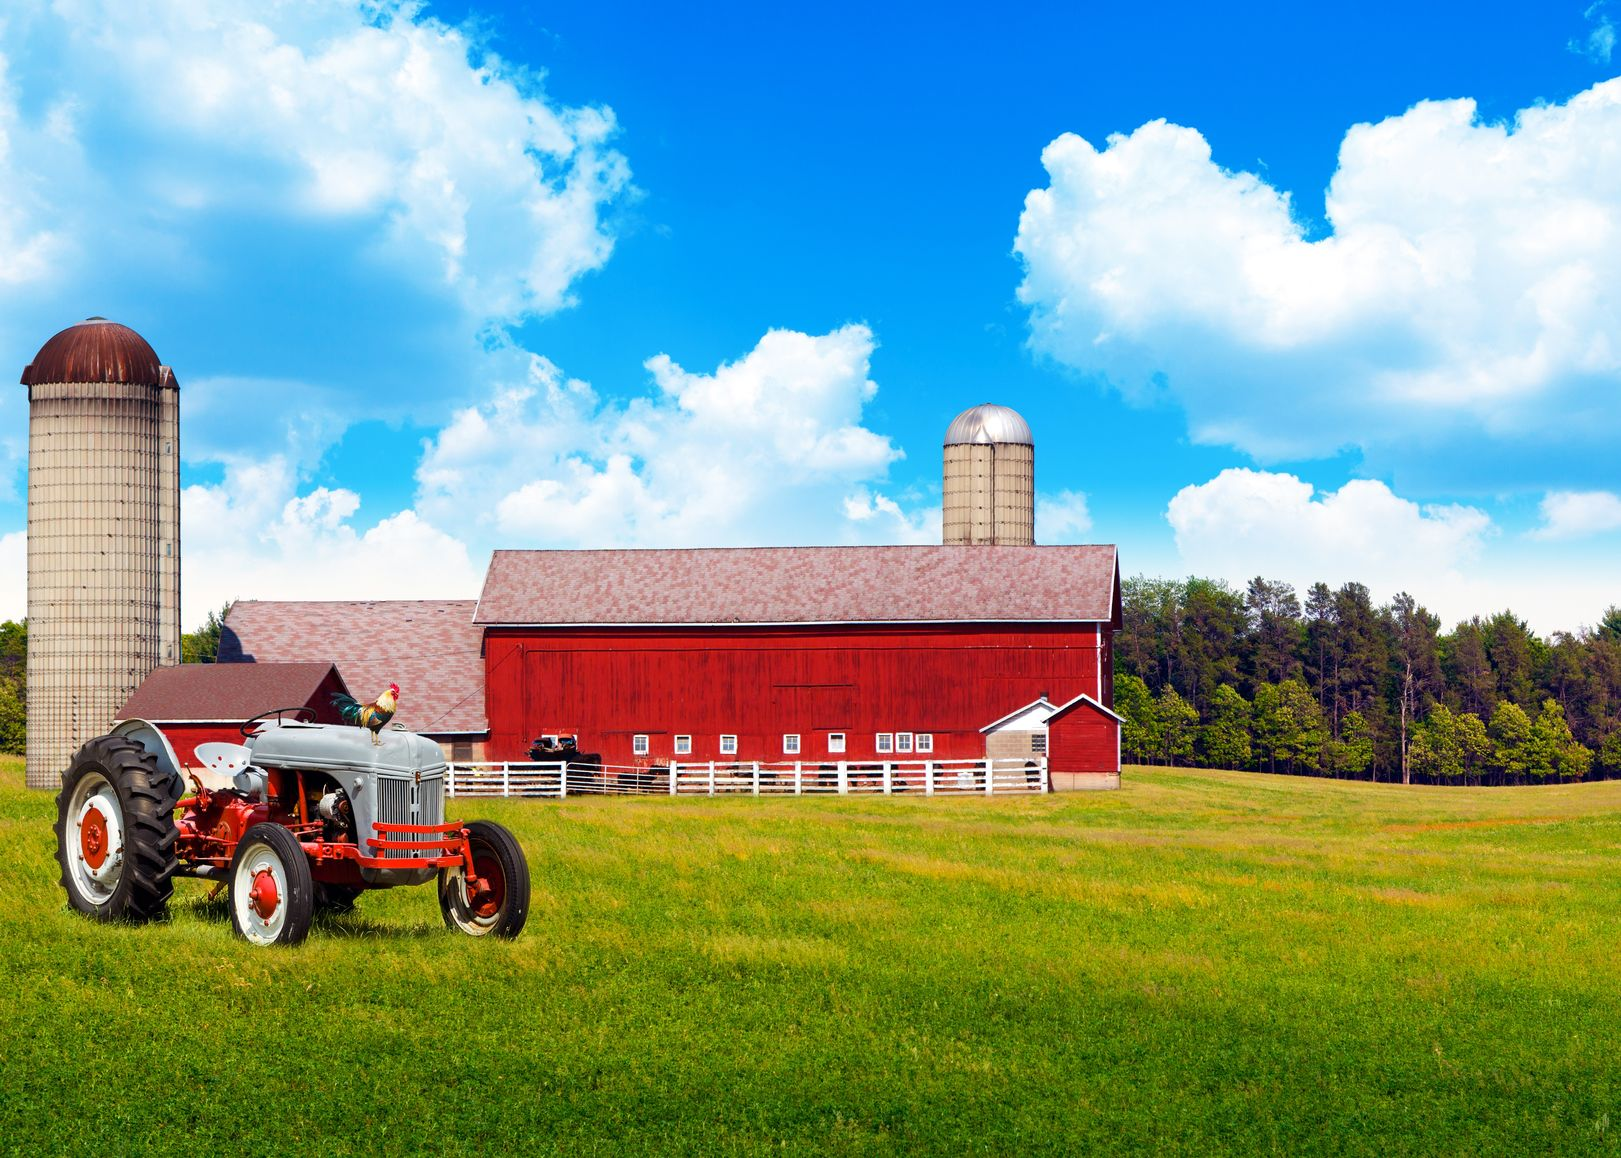 Park City, Heber City, Farm & Ranch Insurance